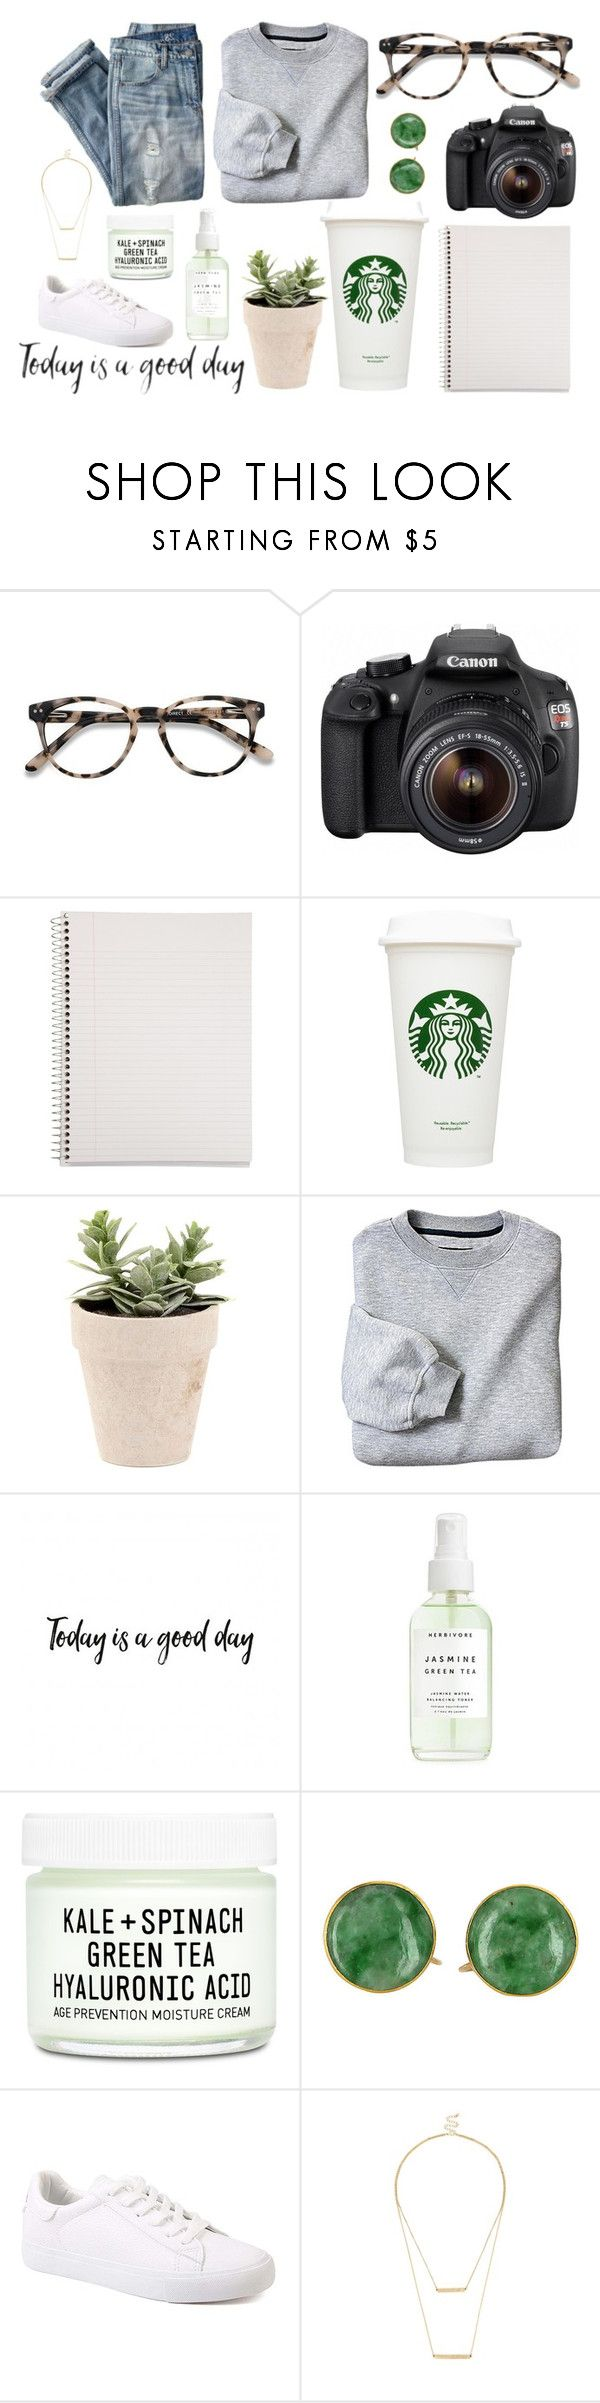 """""""You can't buy happiness, but you can buy Starbucks"""" by jordynfoulksie ❤ liked on Polyvore featuring EyeBuyDirect.com, Eos, Mead, Youth To The People, J.Crew and Sole Society"""